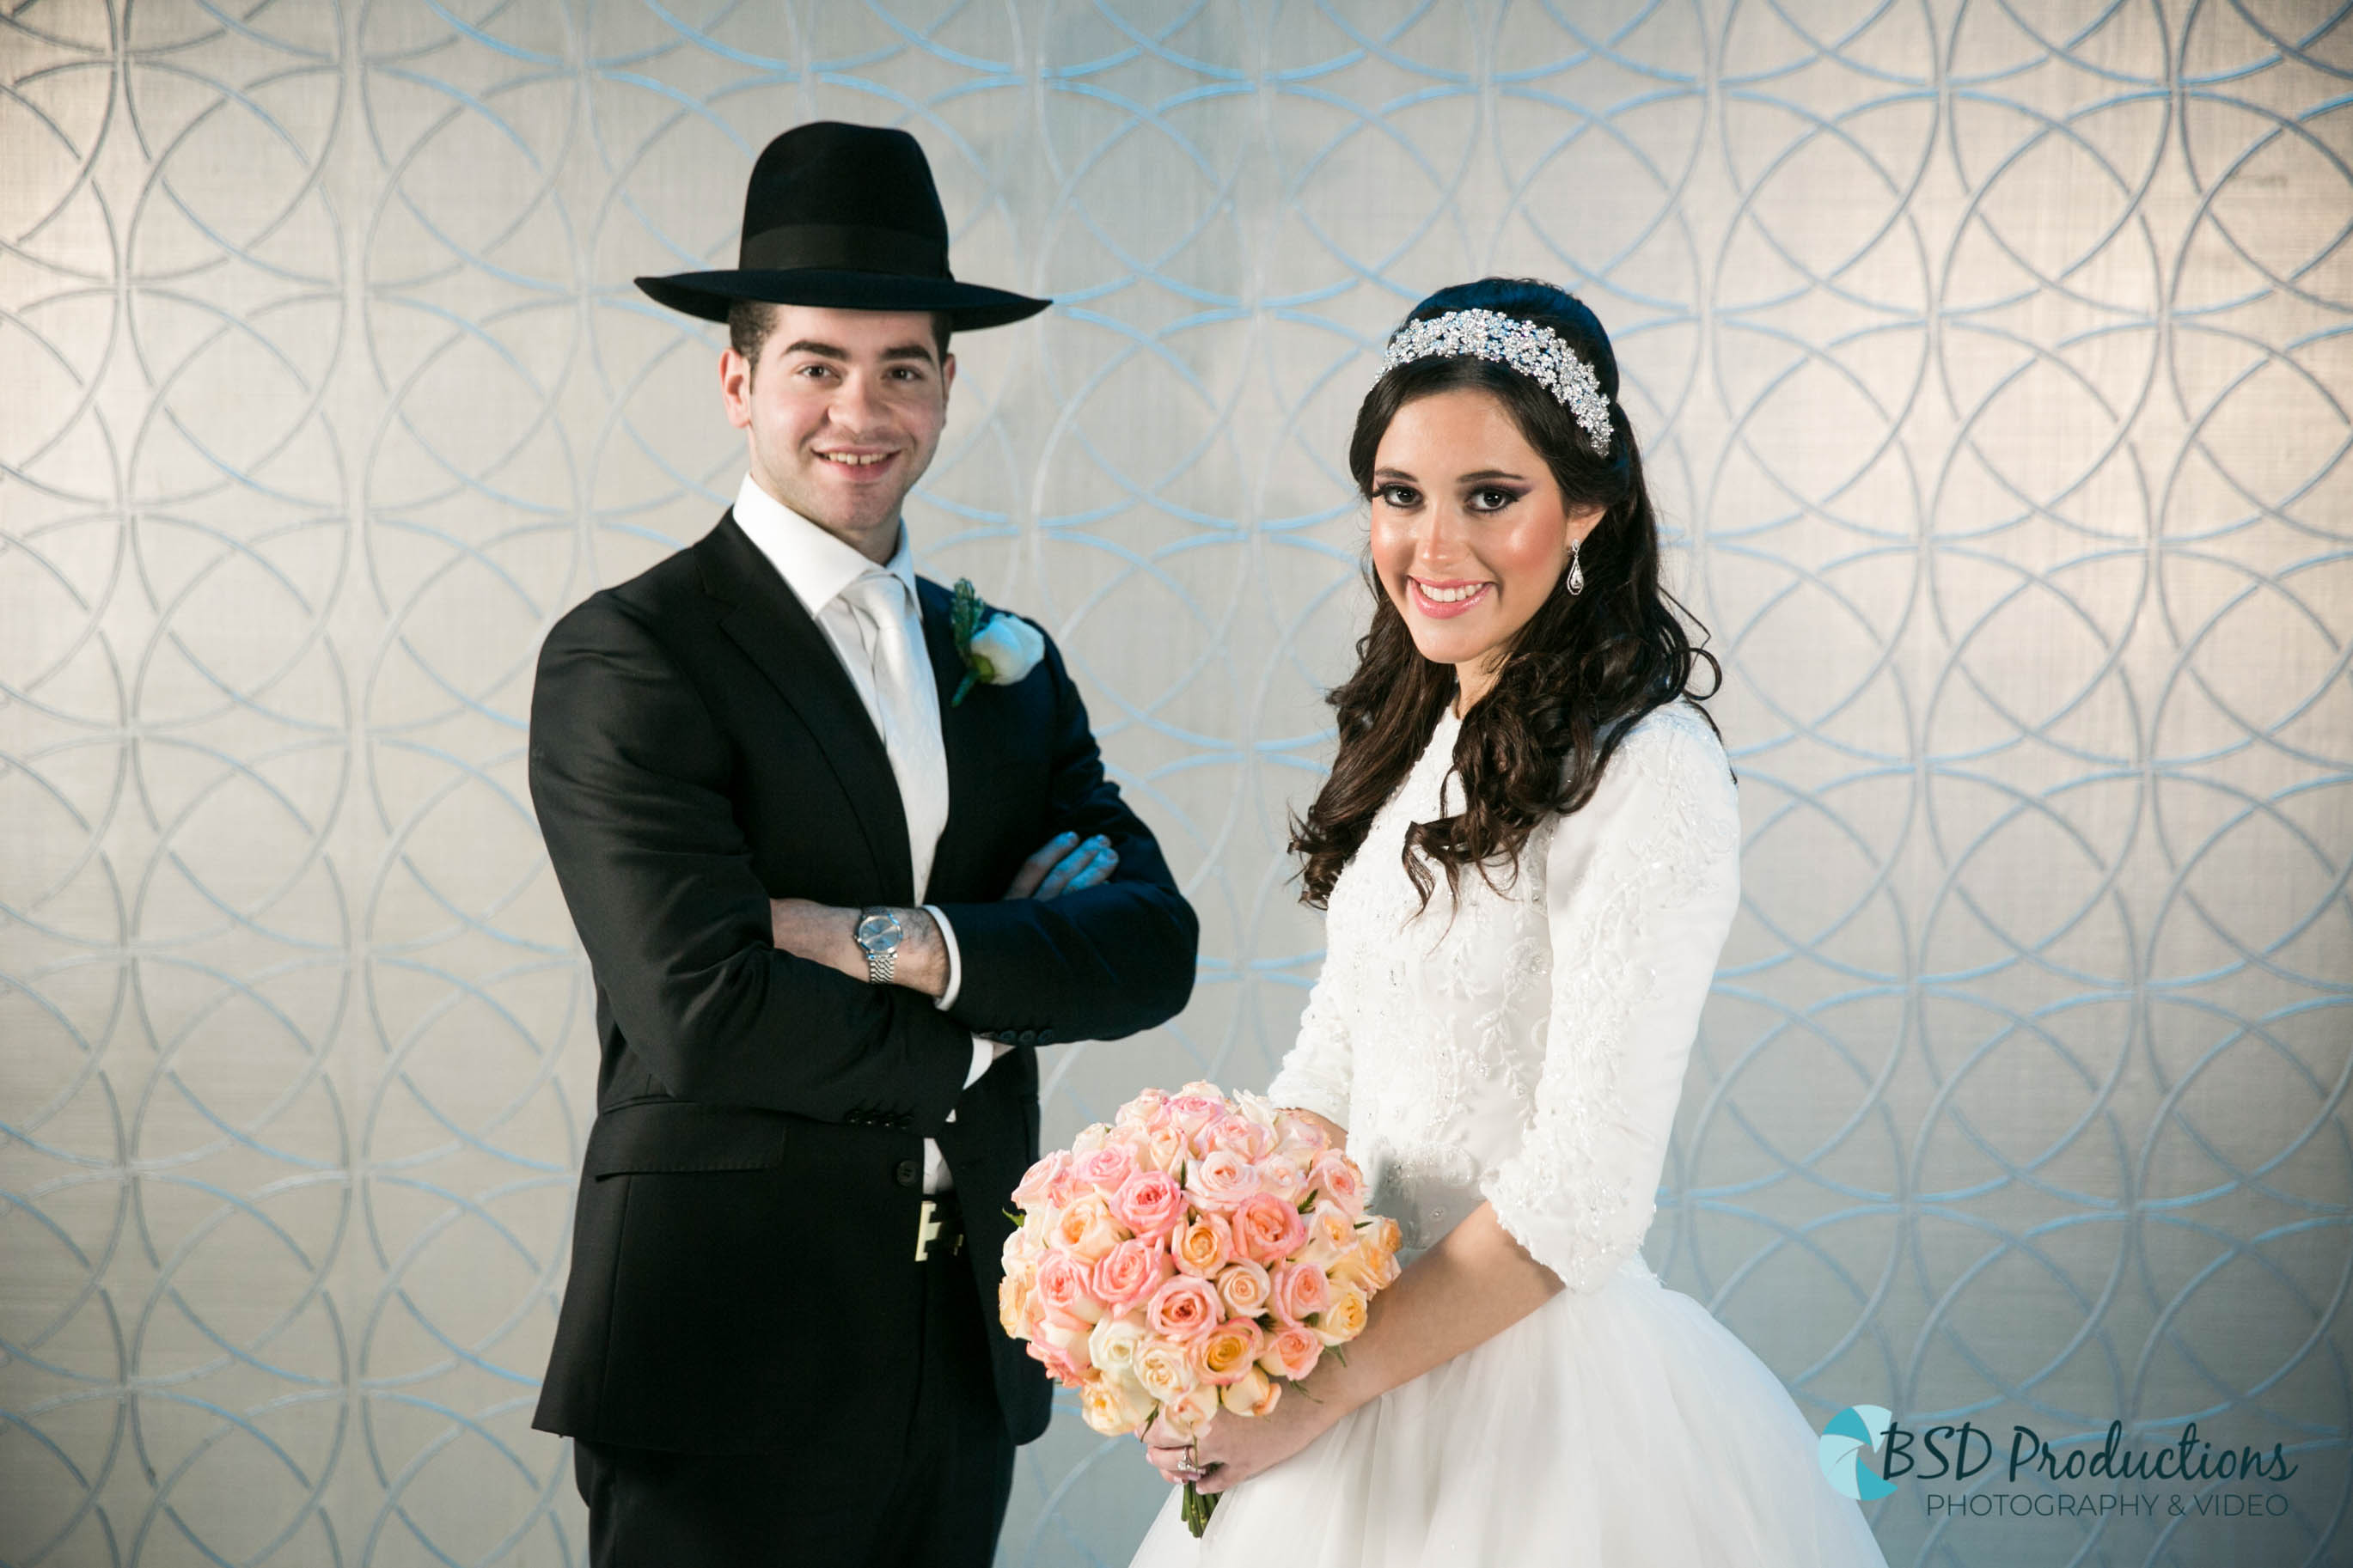 UH5A1051 Wedding – BSD Productions Photography